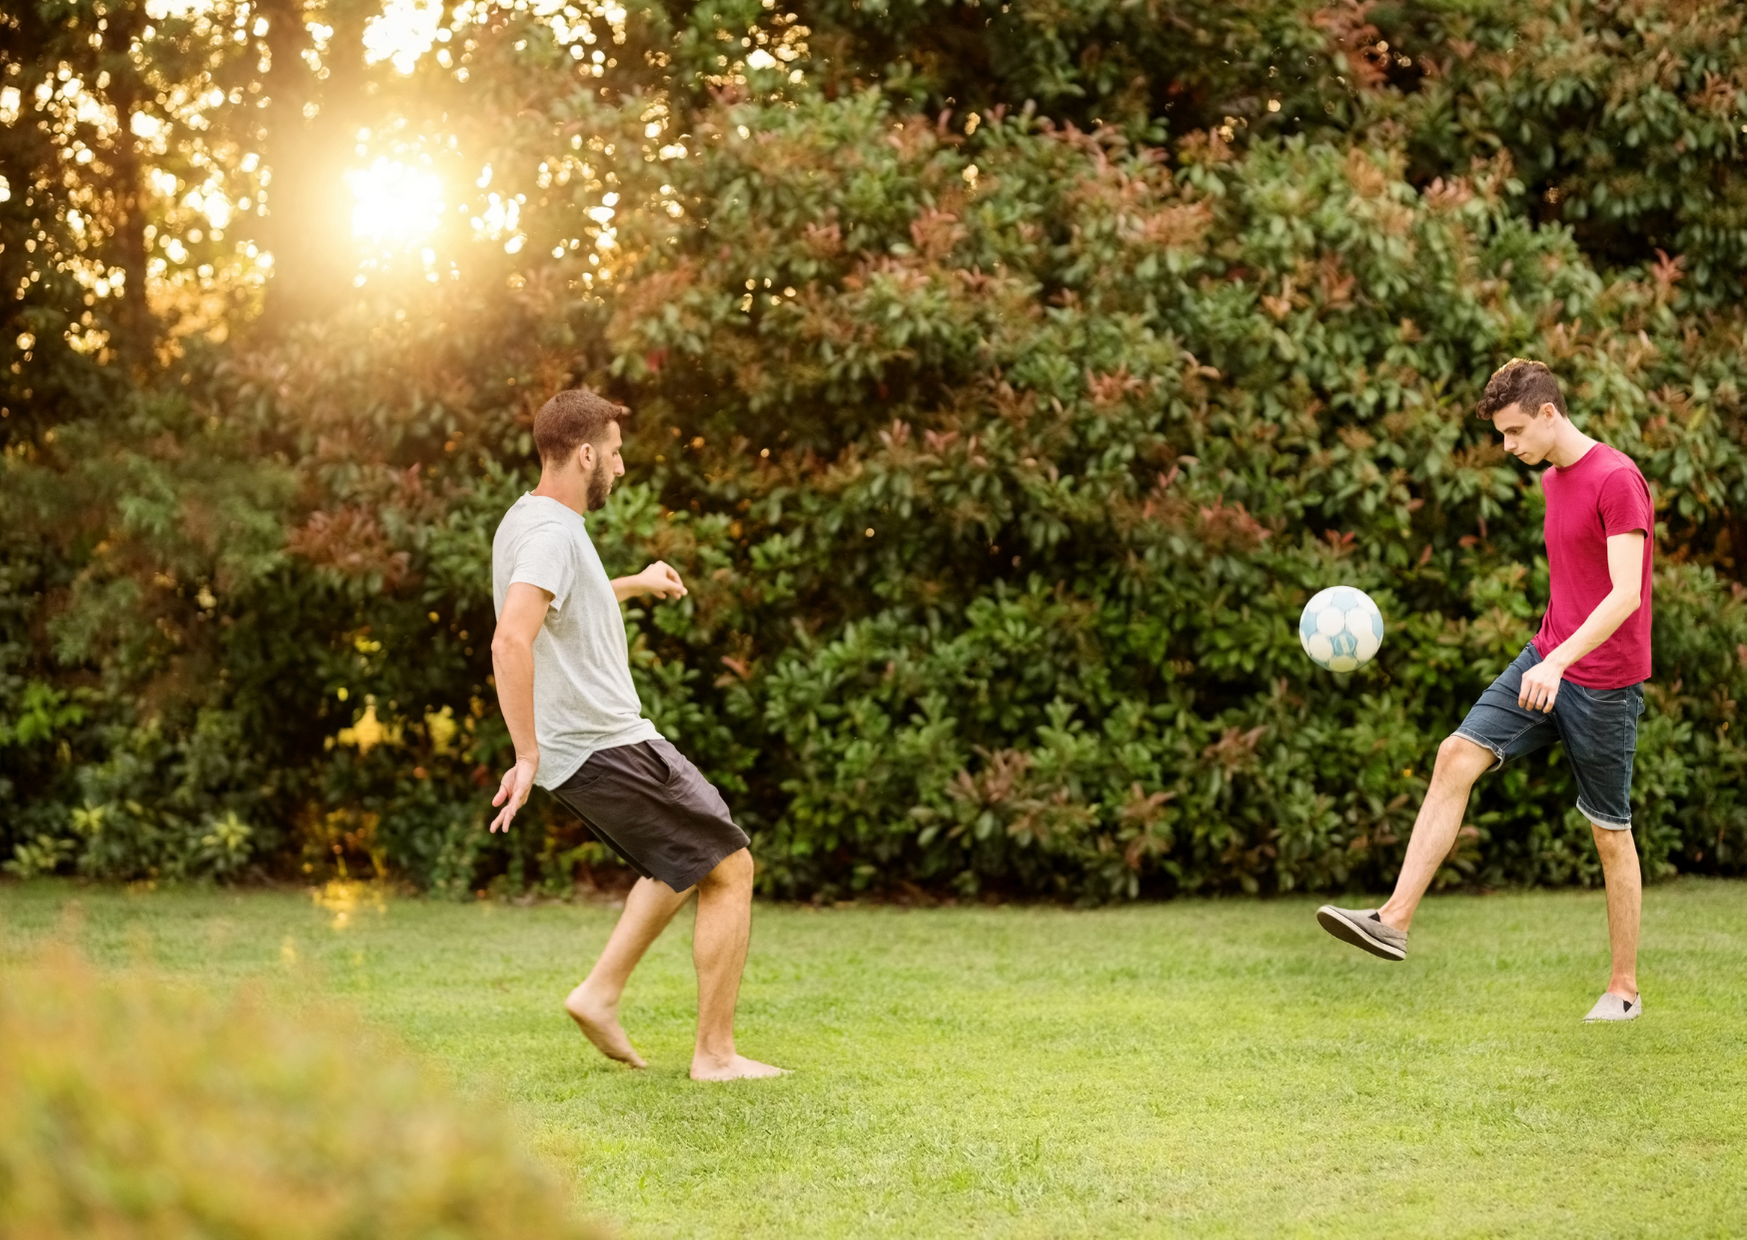 Playing lawn games